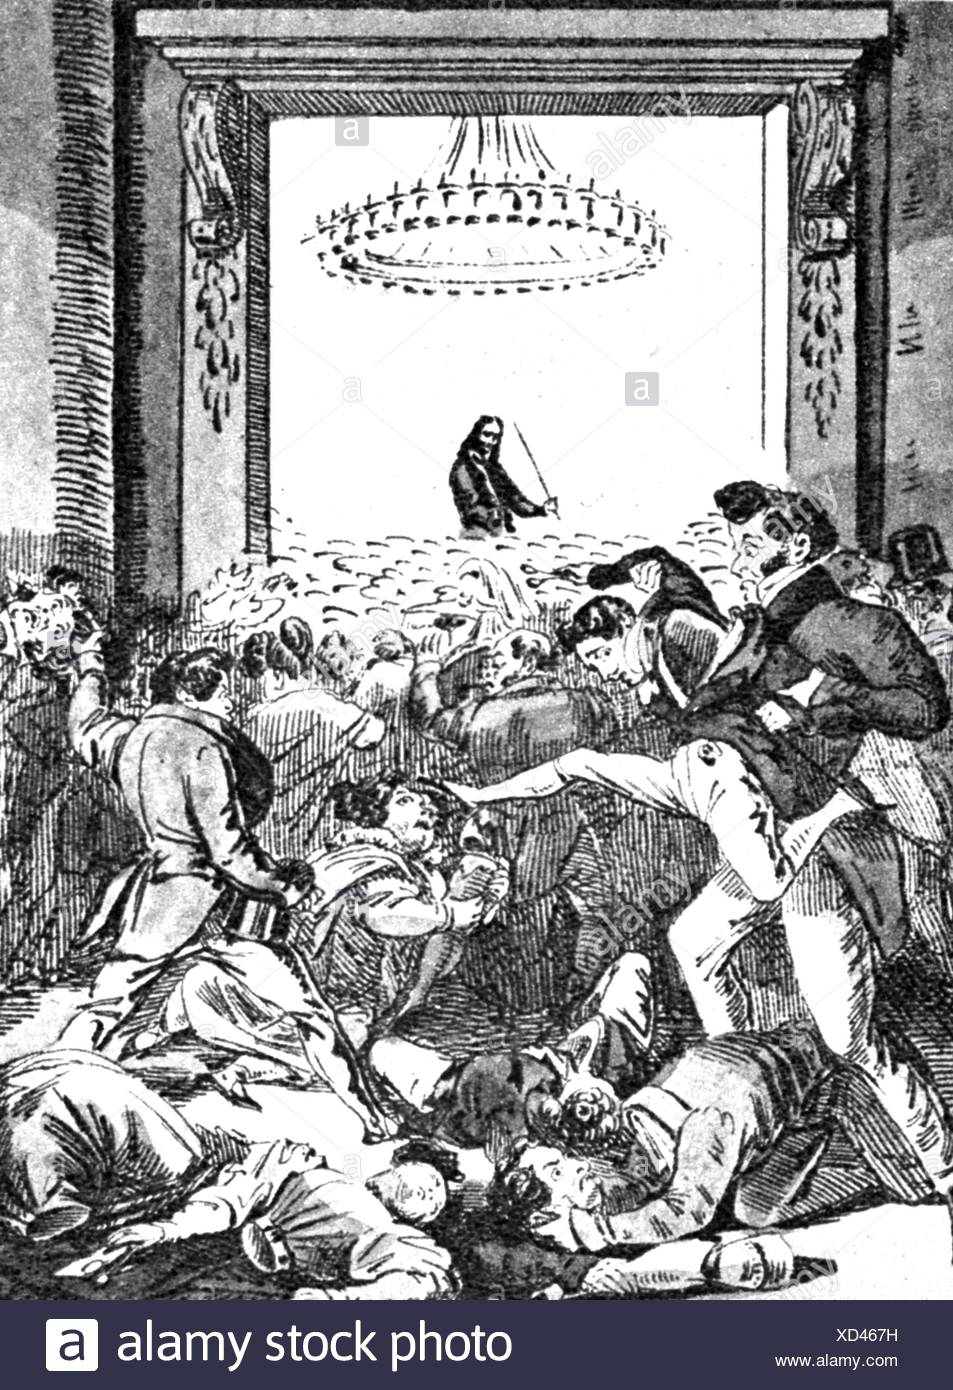 Paganini, Niccolo, 27.10.1782 - 27.5.1840, Italian musician (violinist), half length, during a stage performance, how the Berlins scramble to get a violin player, caricature, Berlin, Germany, 1829, Additional-Rights-Clearances-NA - Stock Image